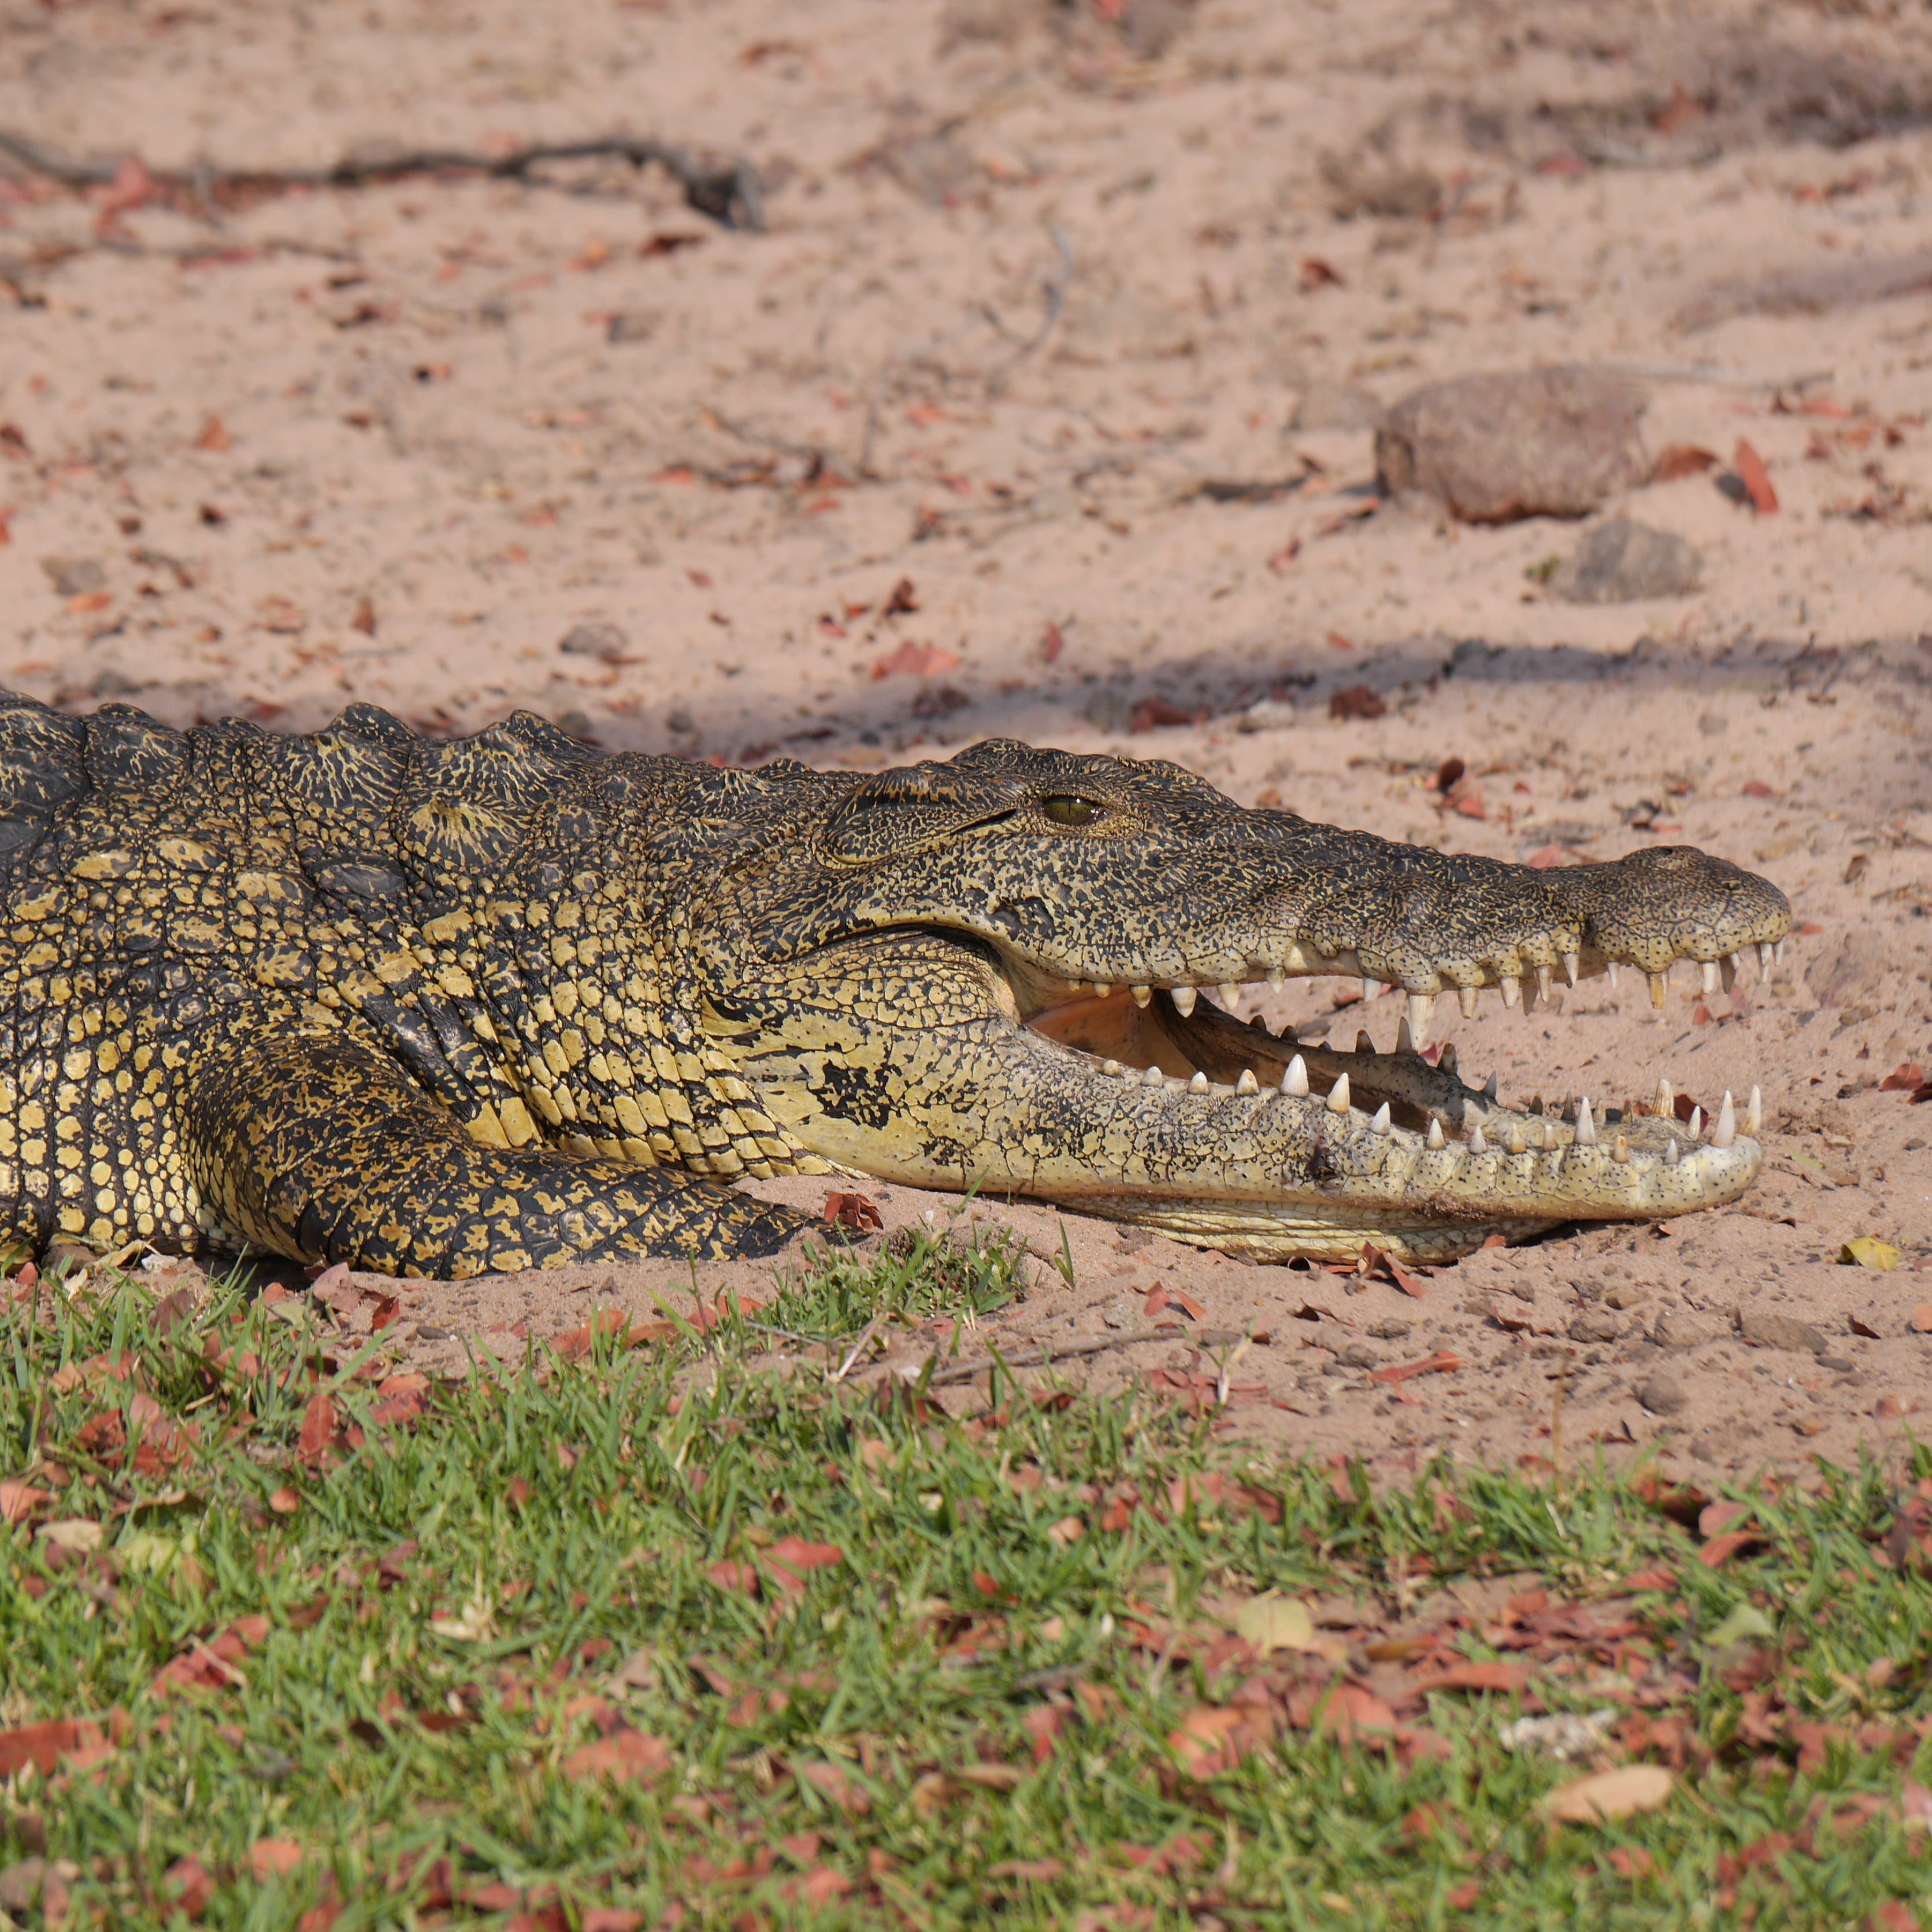 Grey and Yellow Crocodile Crawling With Open Mouth during Daytime